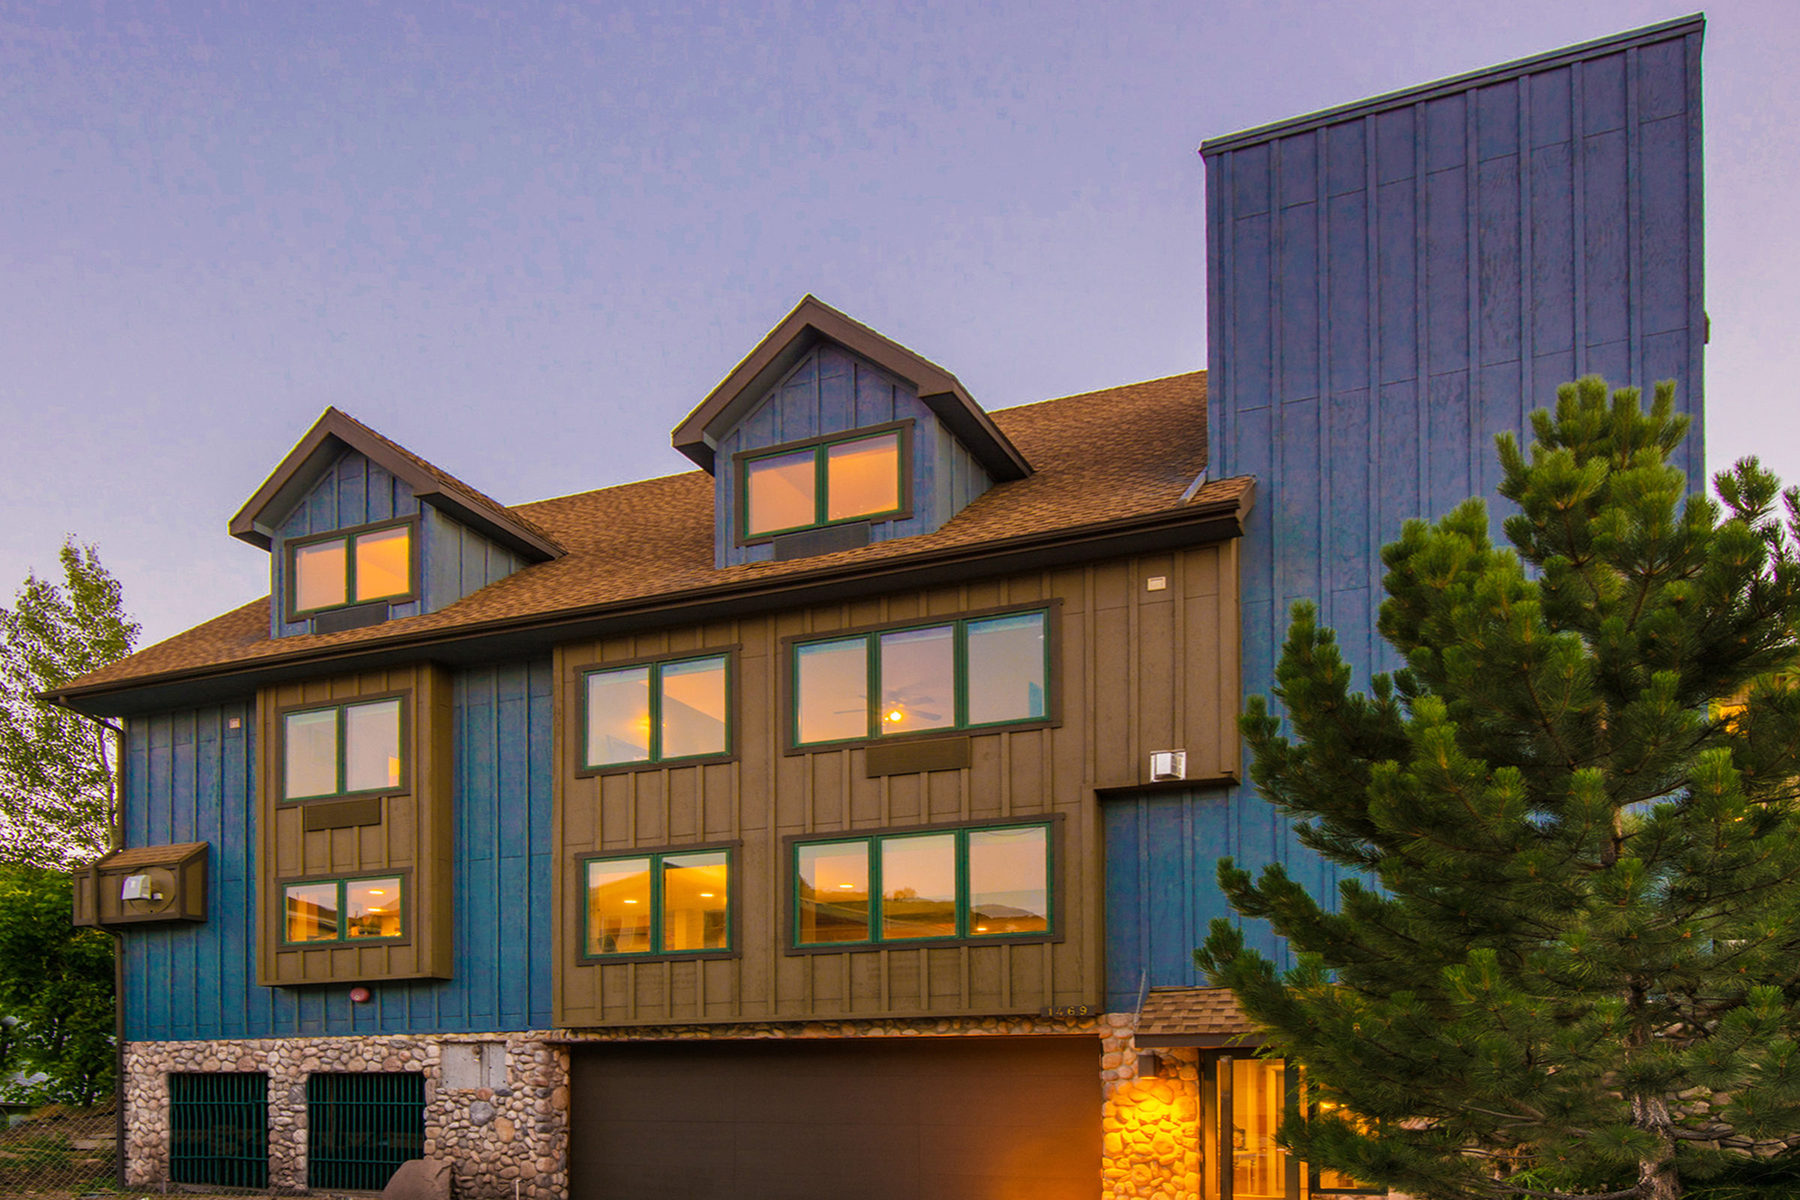 Maison unifamiliale pour l Vente à Park City Epic Lodge 1469 Woodside Ave Park City, Utah 84060 États-Unis